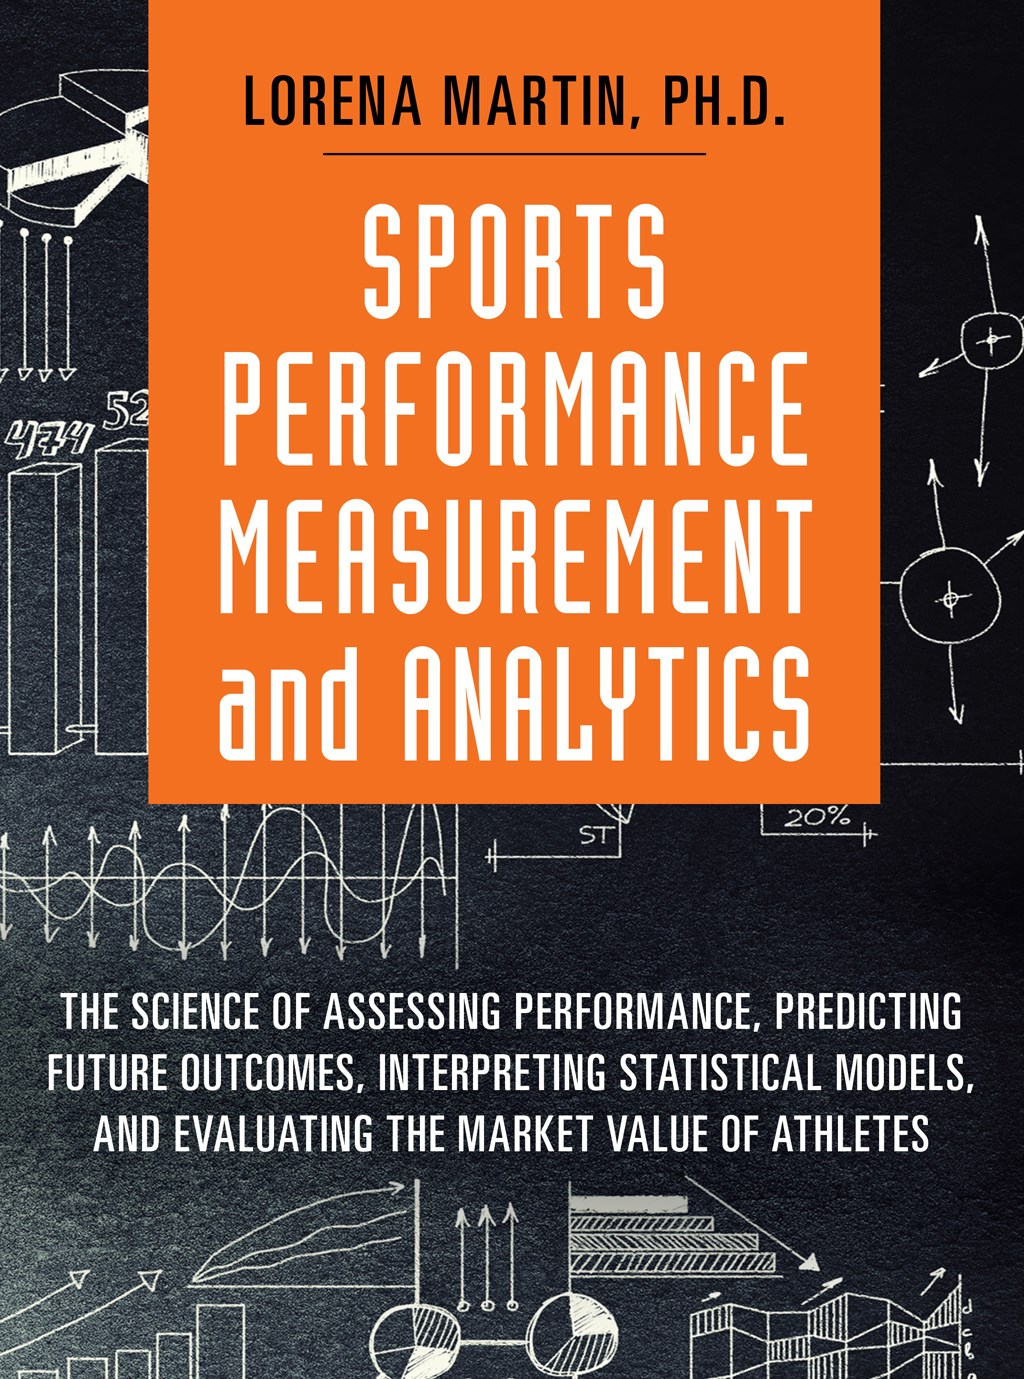 Sports Performance Measurement and Analytics: The Science of Assessing Performance, Predicting Future Outcomes, Interpreting Statistical Models, and Evaluating the Market Value of Athletes